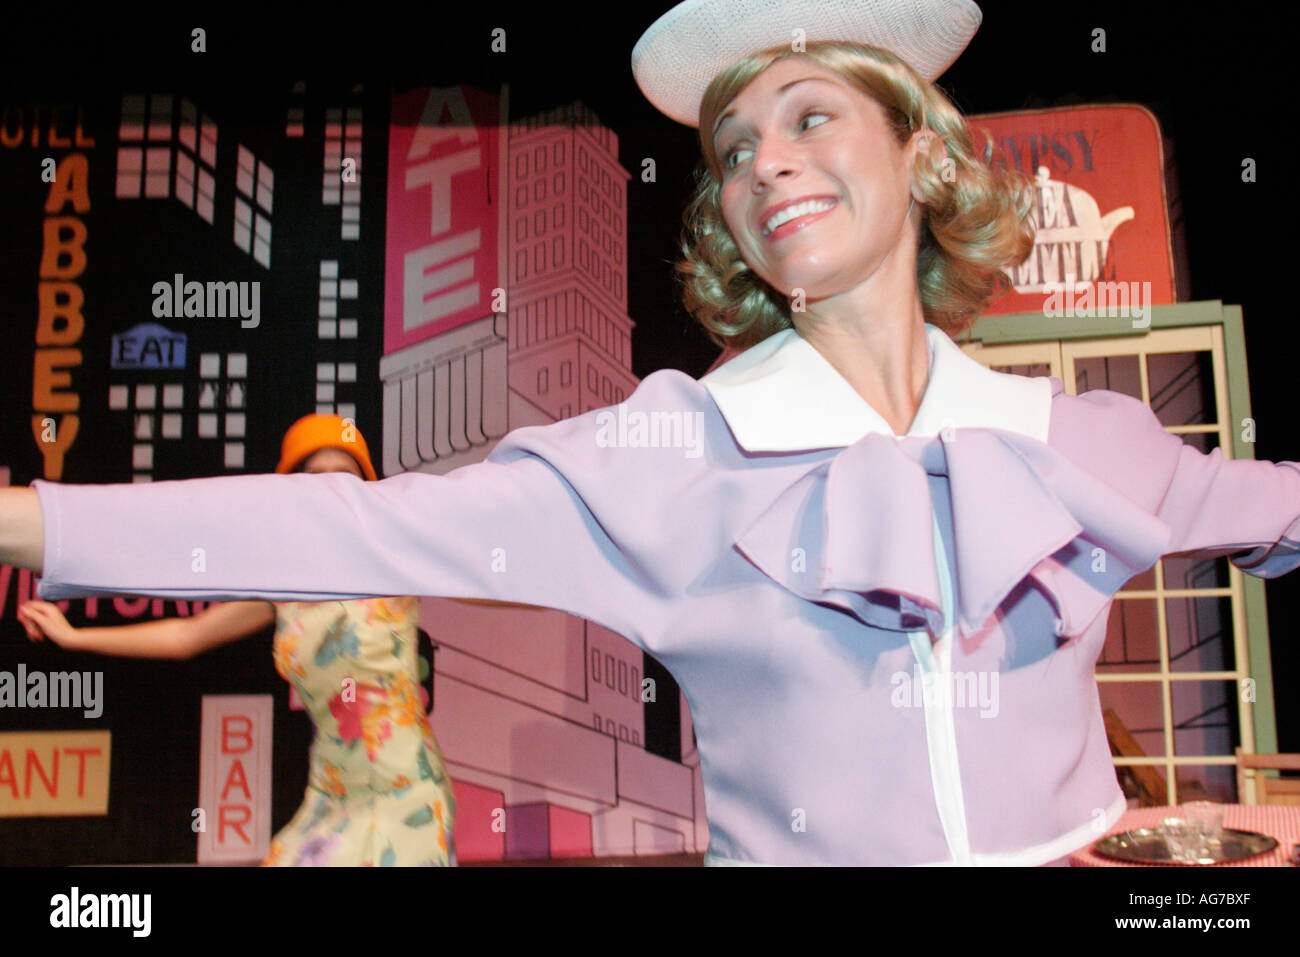 Alabama Guntersville The Whole Backstage Theater 42nd Street community actor actress singer perform stage - Stock Image